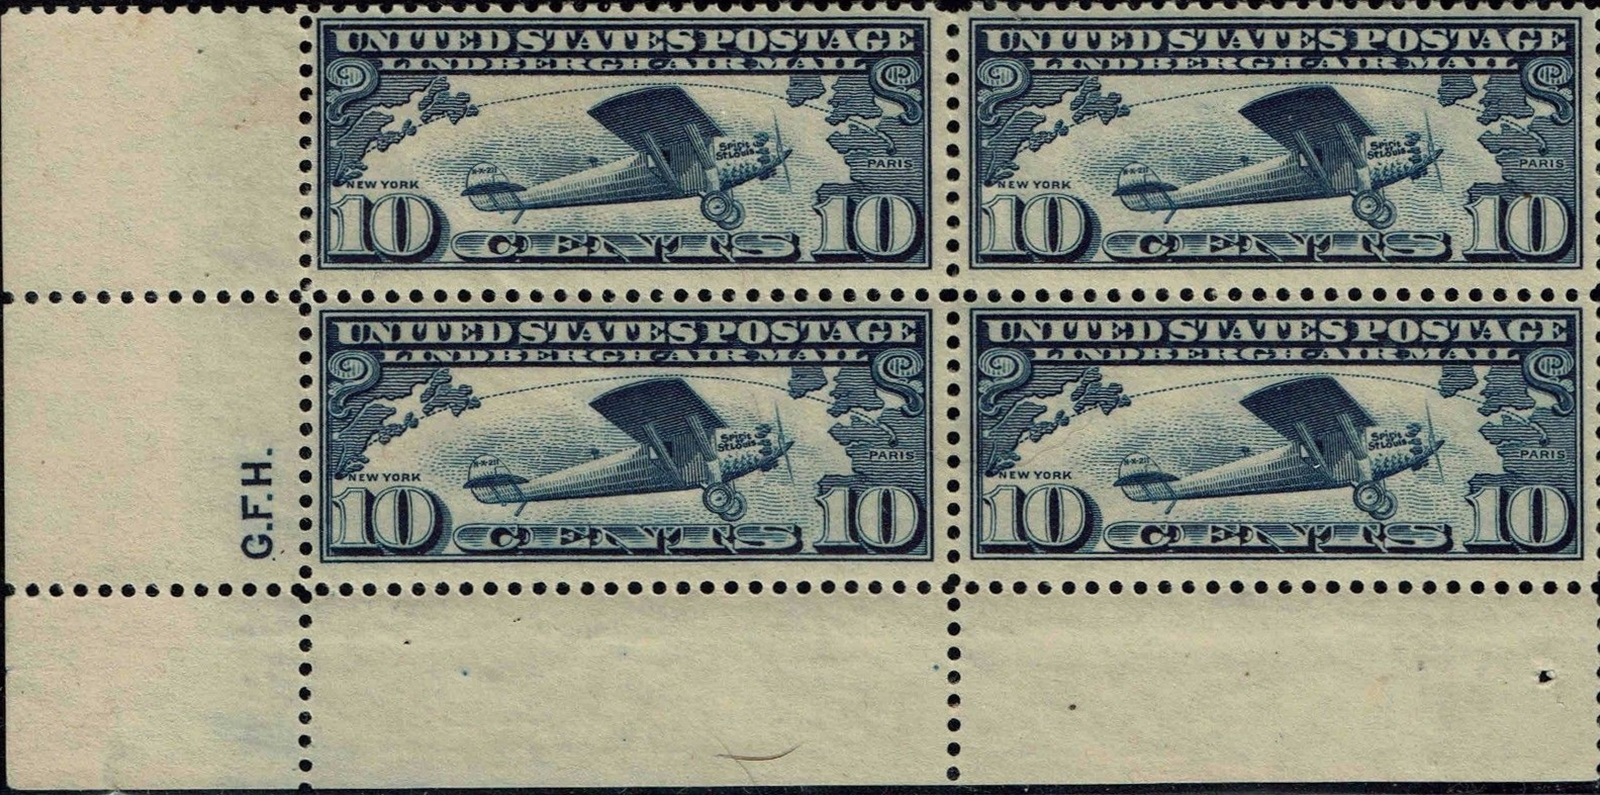 United States - Scott #C10 (1927) block of 4 from lower left sheet position with the initials of siderographer George F. Henlock.